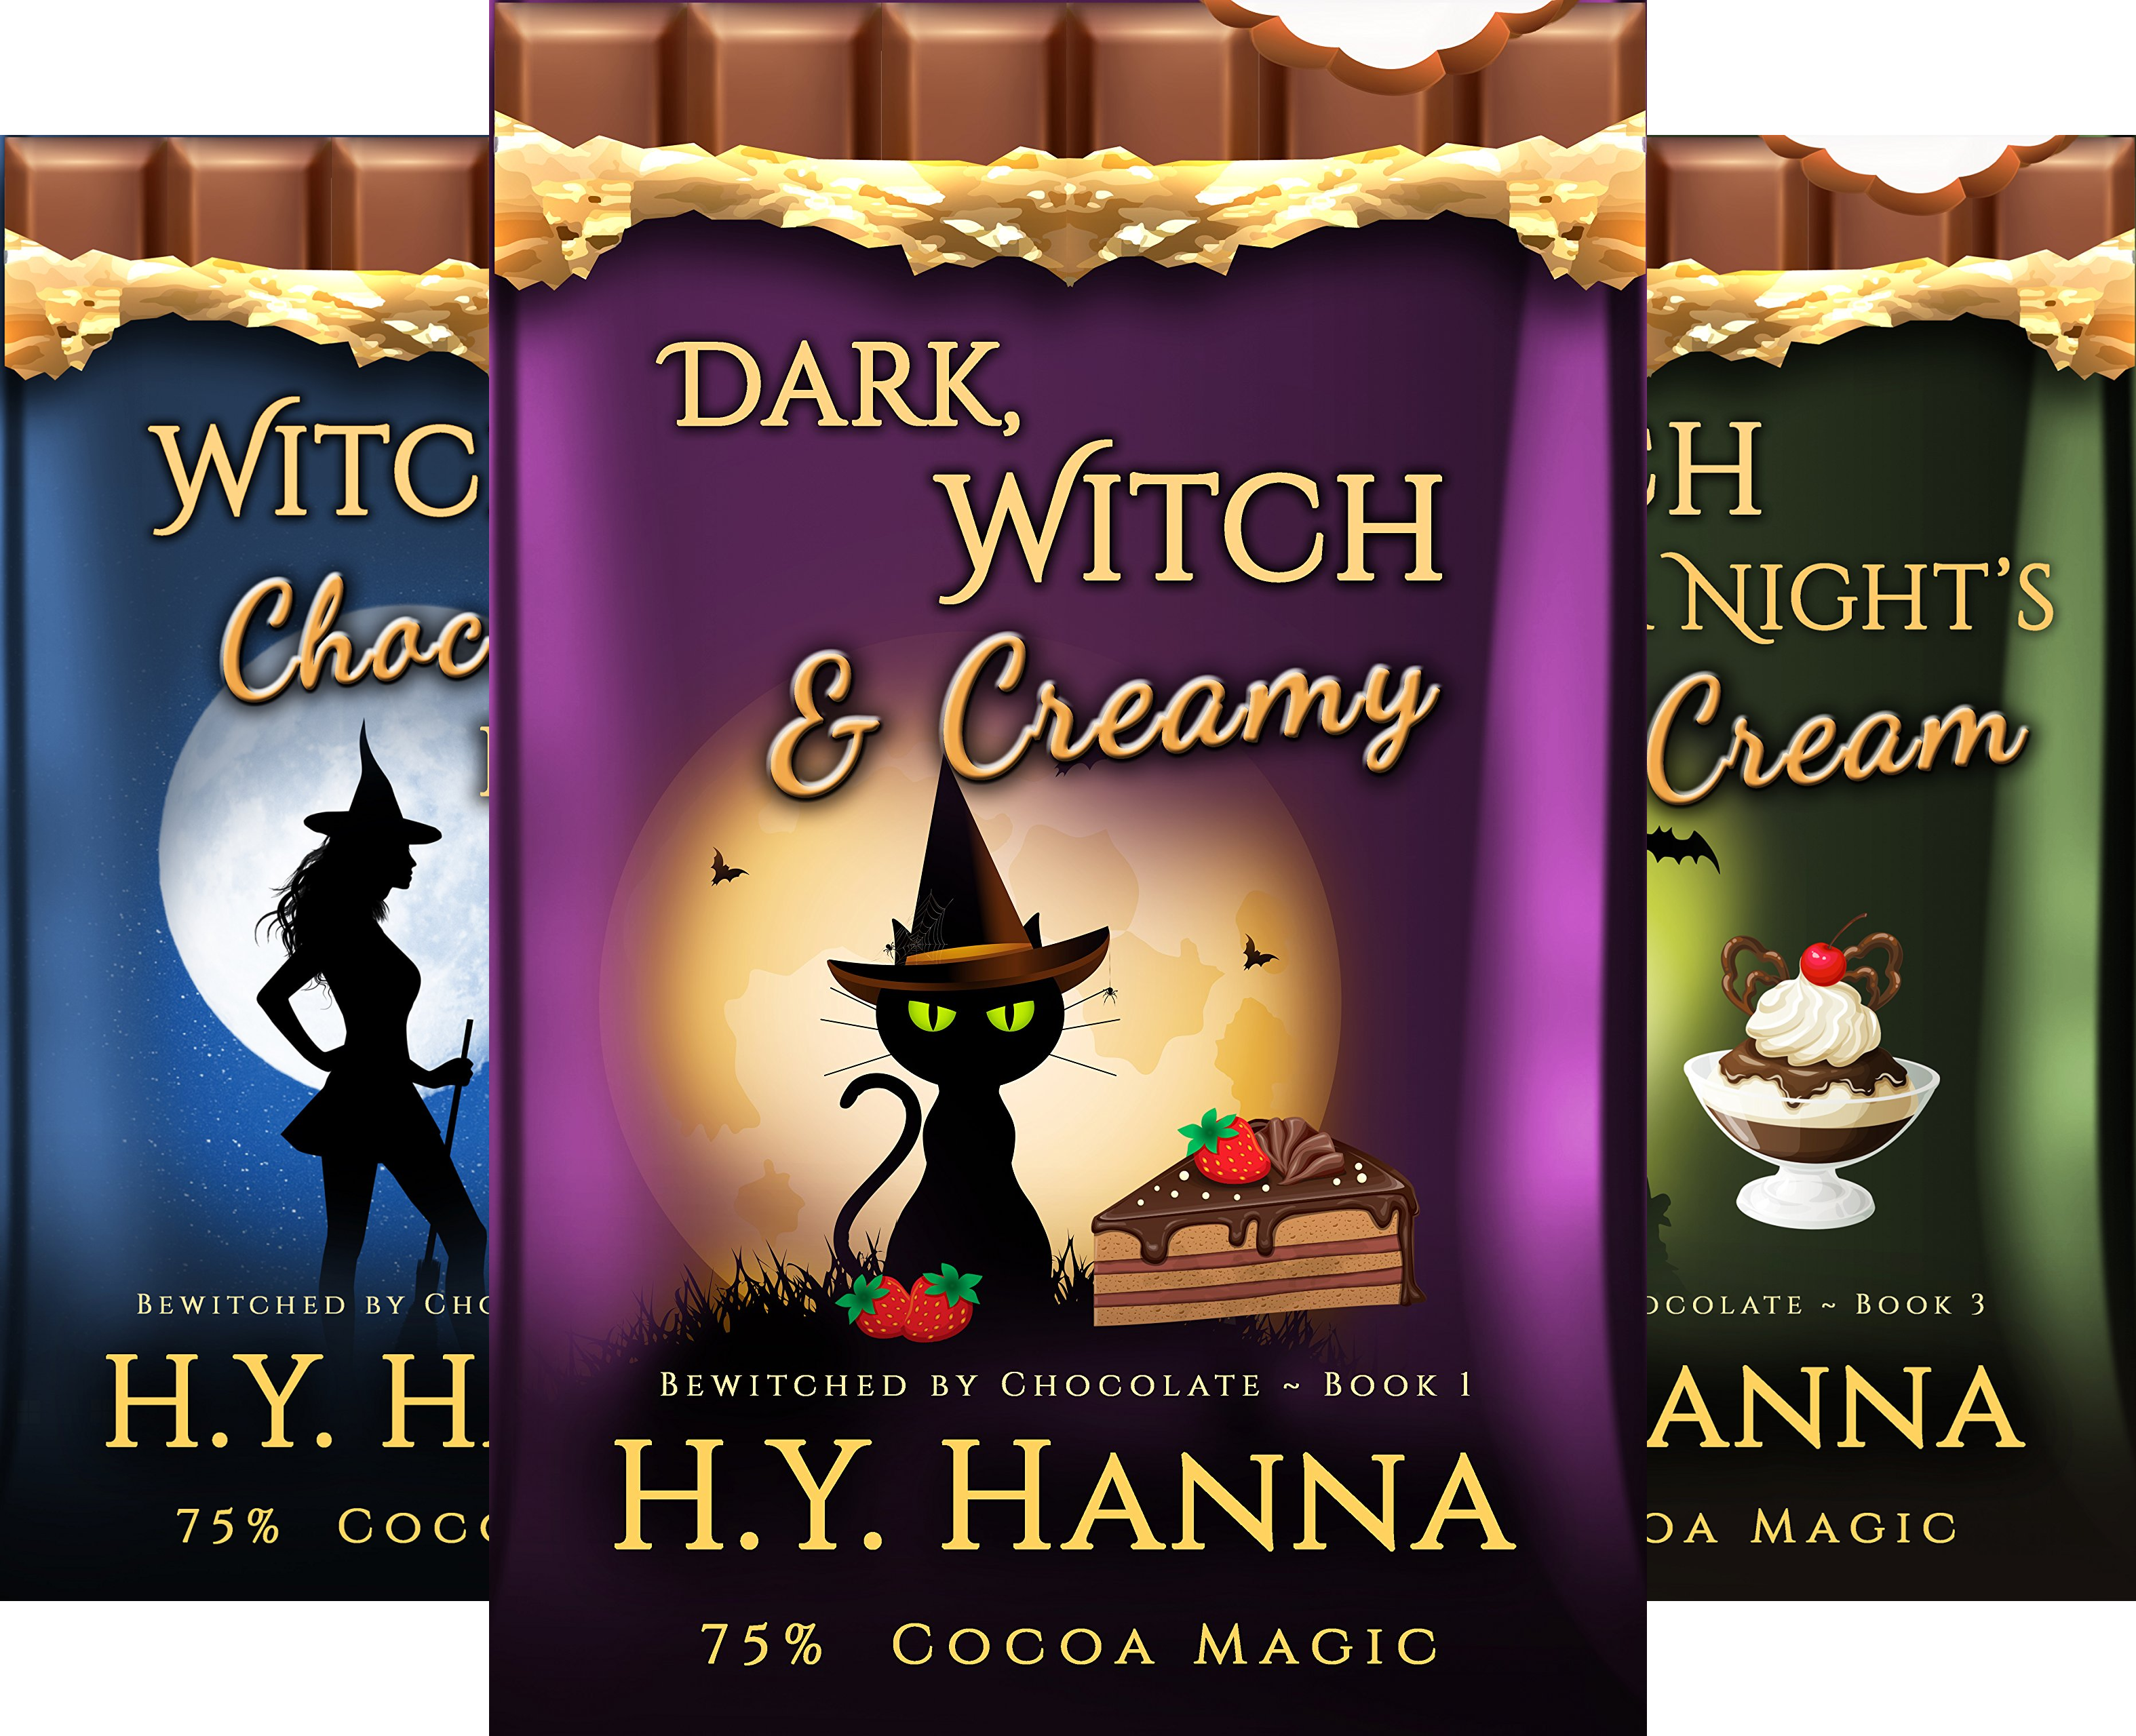 BEWITCHED BY CHOCOLATE Mysteries (3 Book Series)